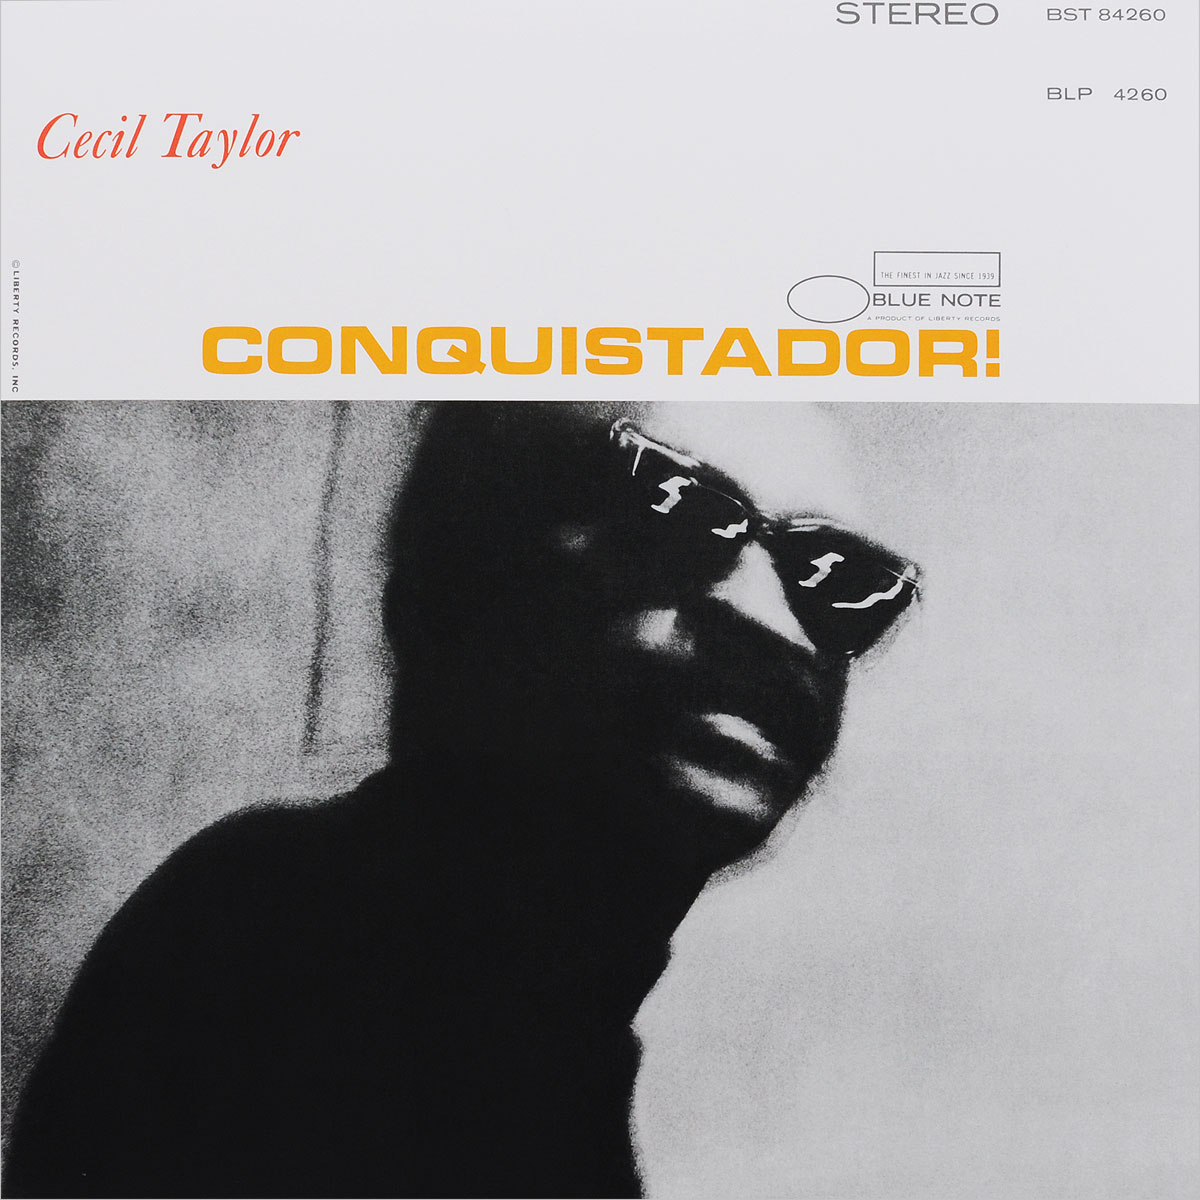 Сесил Тэйлор Cecil Taylor. Conquistador! (LP) сесил тэйлор cecil taylor unit structures lp